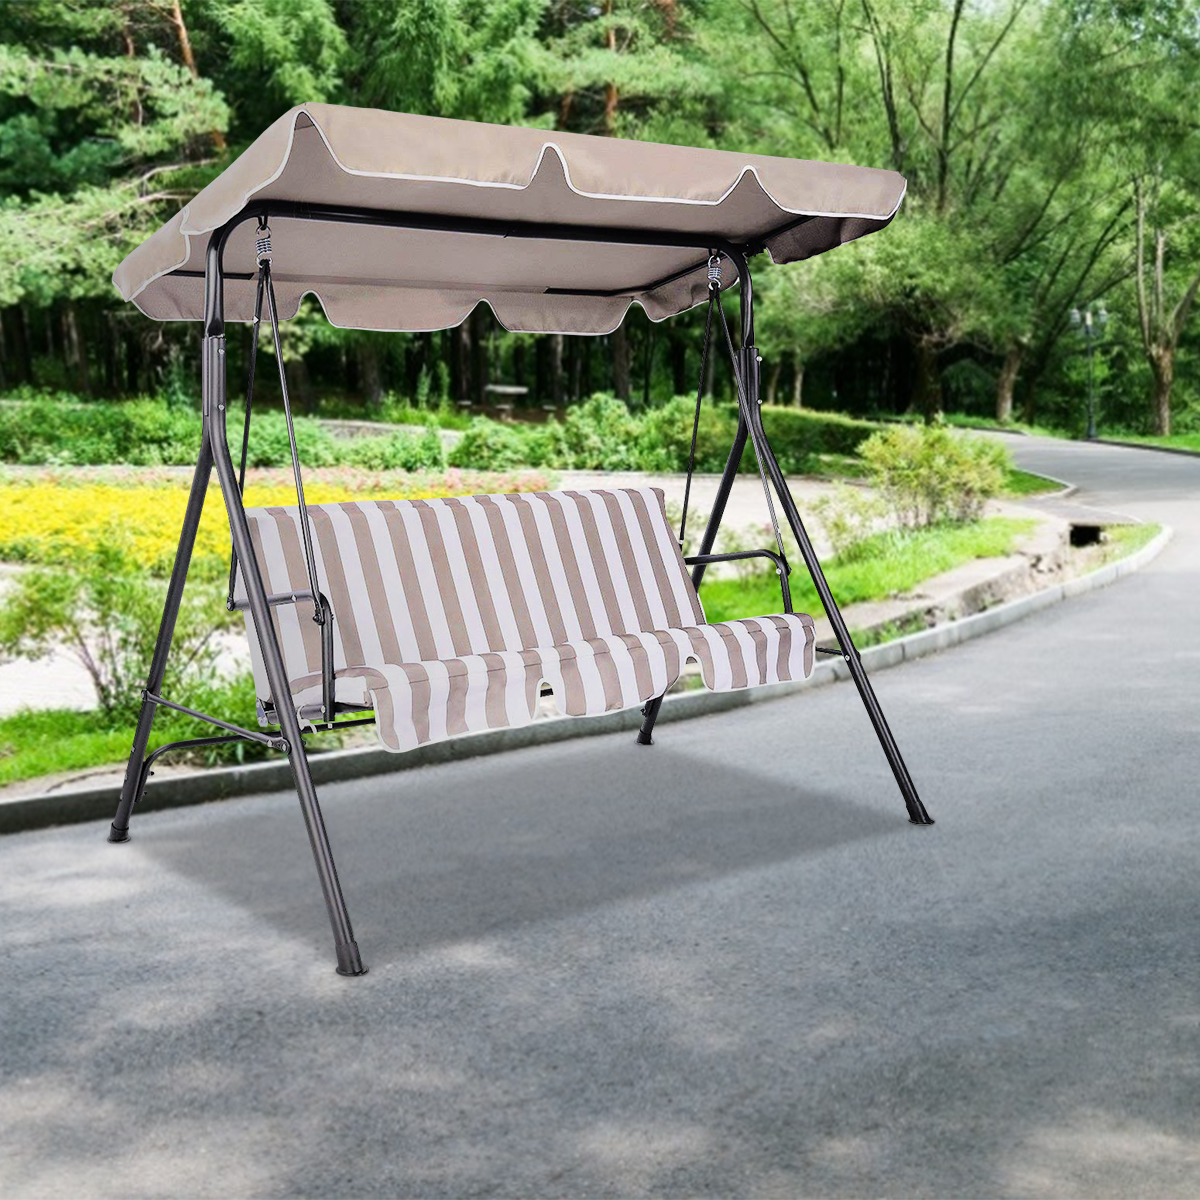 Swing-Top-Cover-Canopy-Replacement-Porch-Patio-Outdoor-66-034-x45-034-75-034-x52-034-77-034-x43-034 thumbnail 5